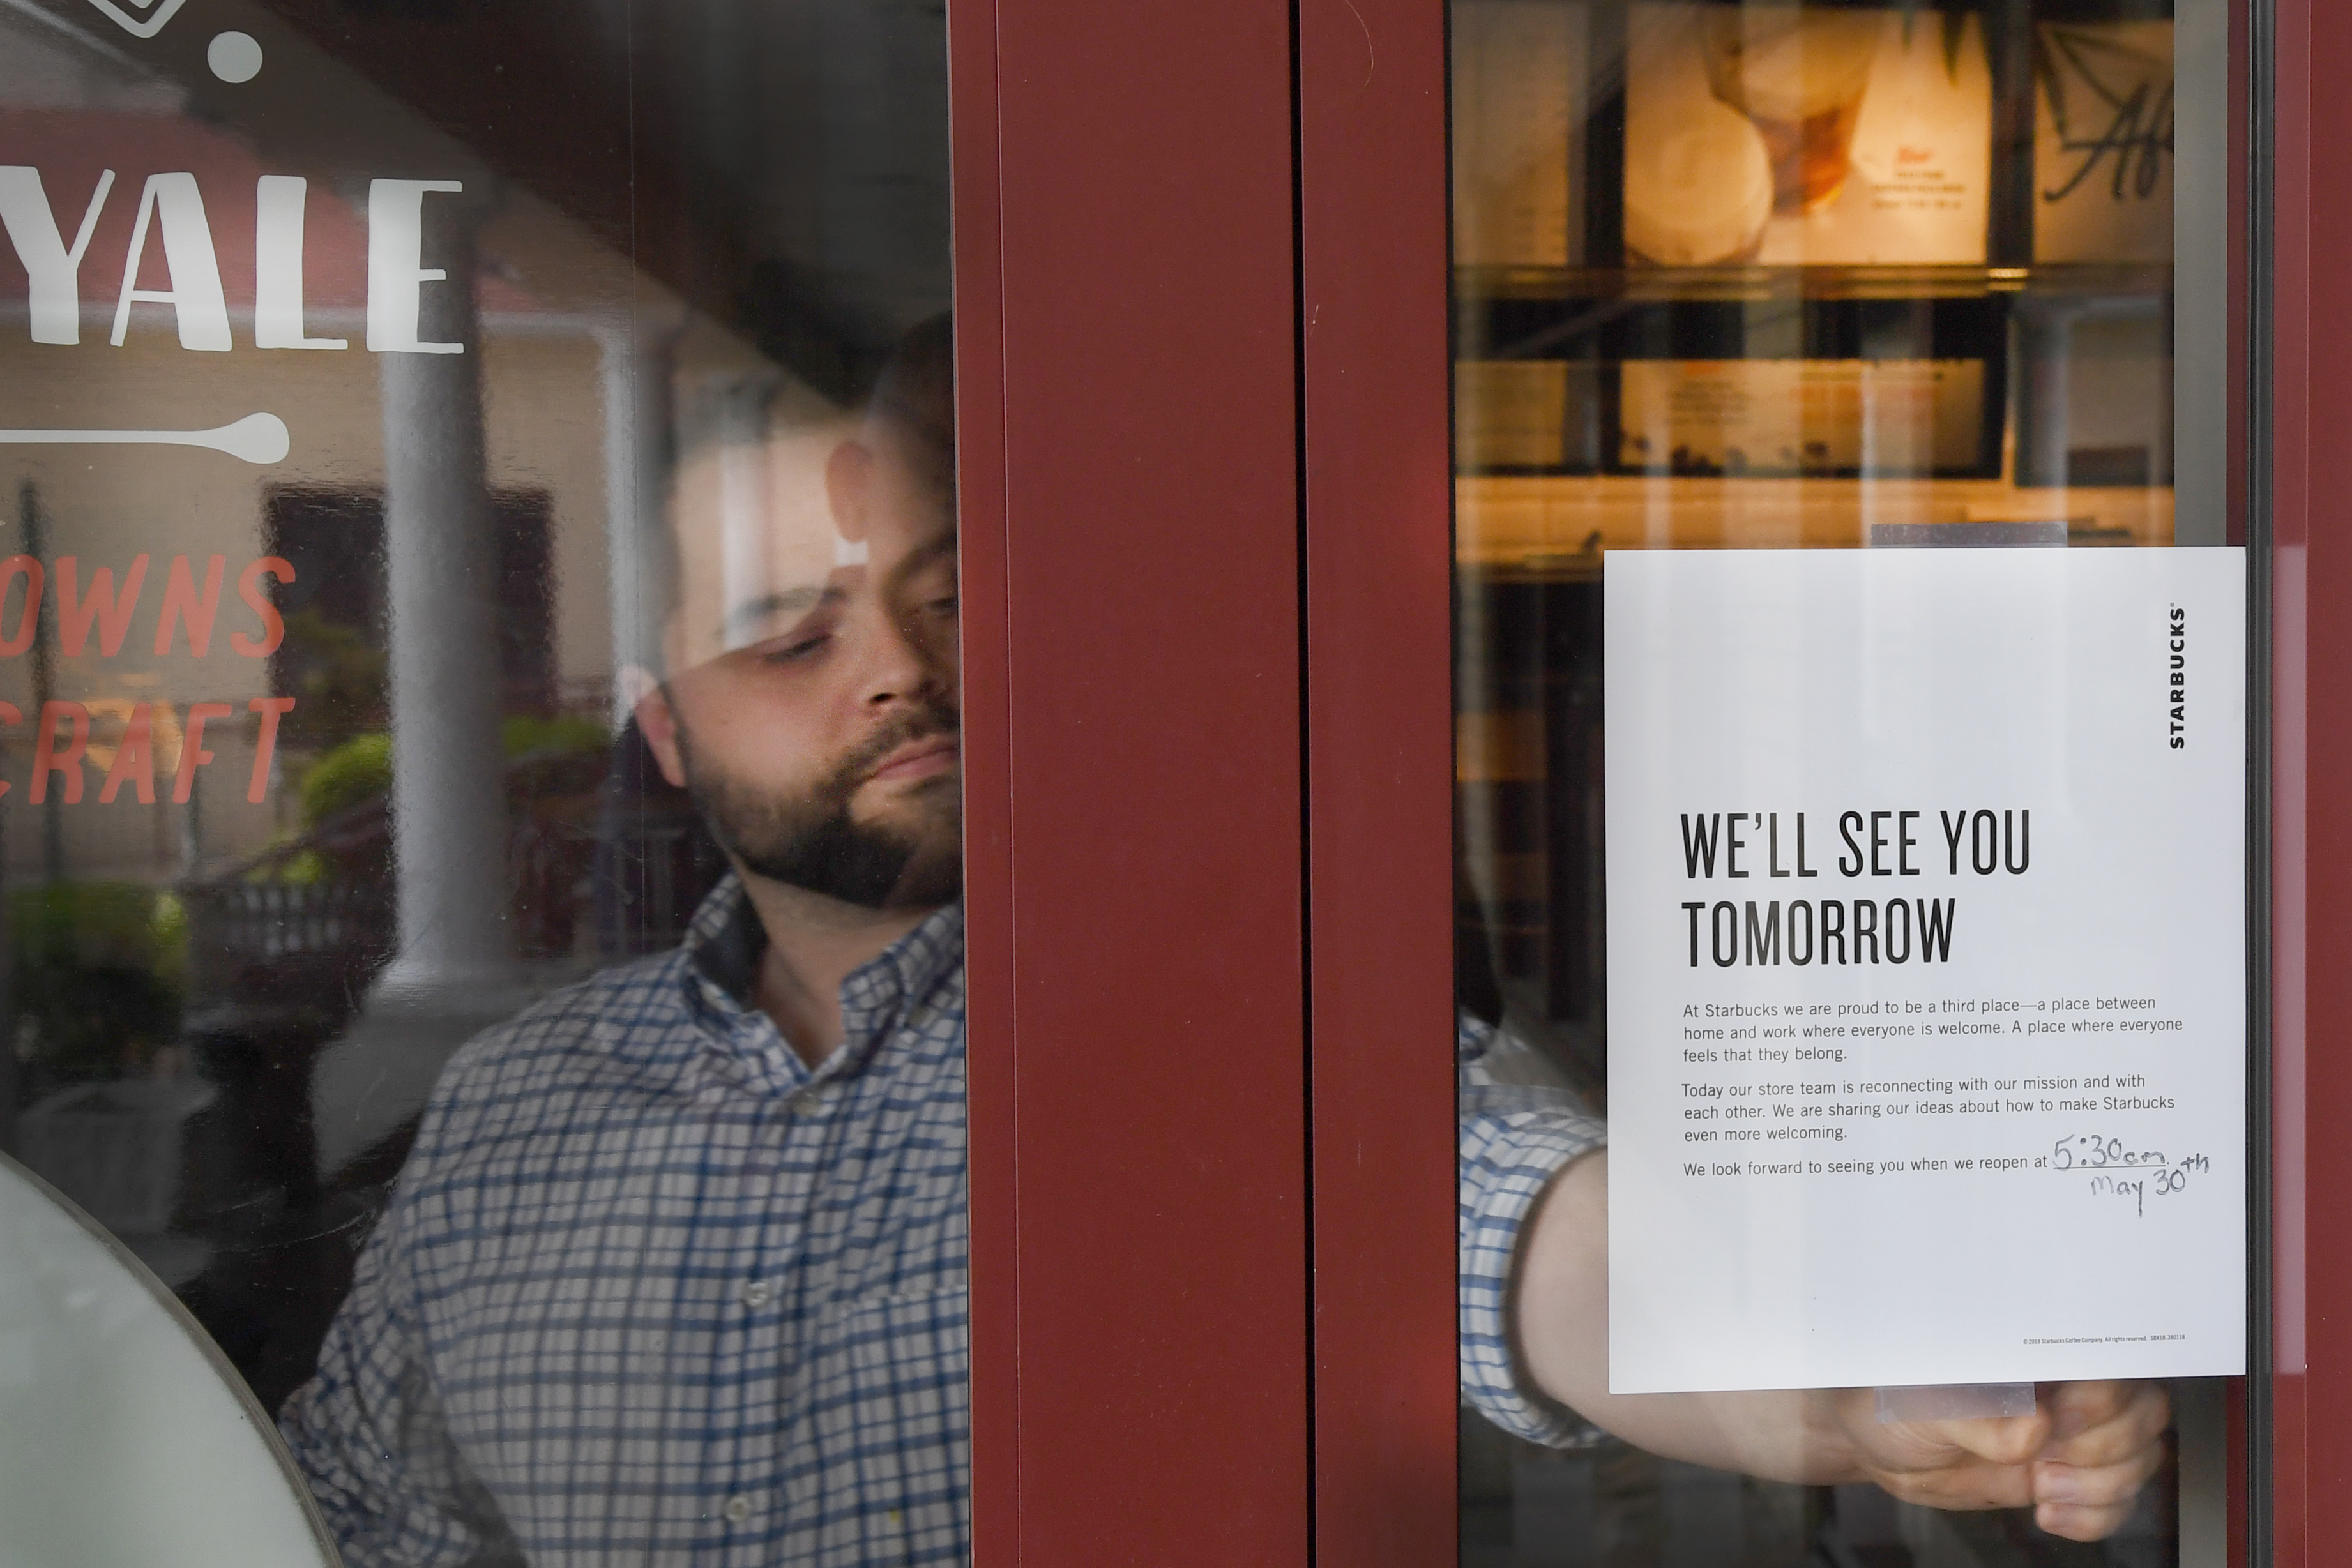 A Starbucks staff member tapes a message to the door of the Starbucks on Bala Cynwyd, letting customers know that the store will be closed the rest of the day, on Tuesday May 29, 2018, as part of Starbucks´ new implicit bias training.